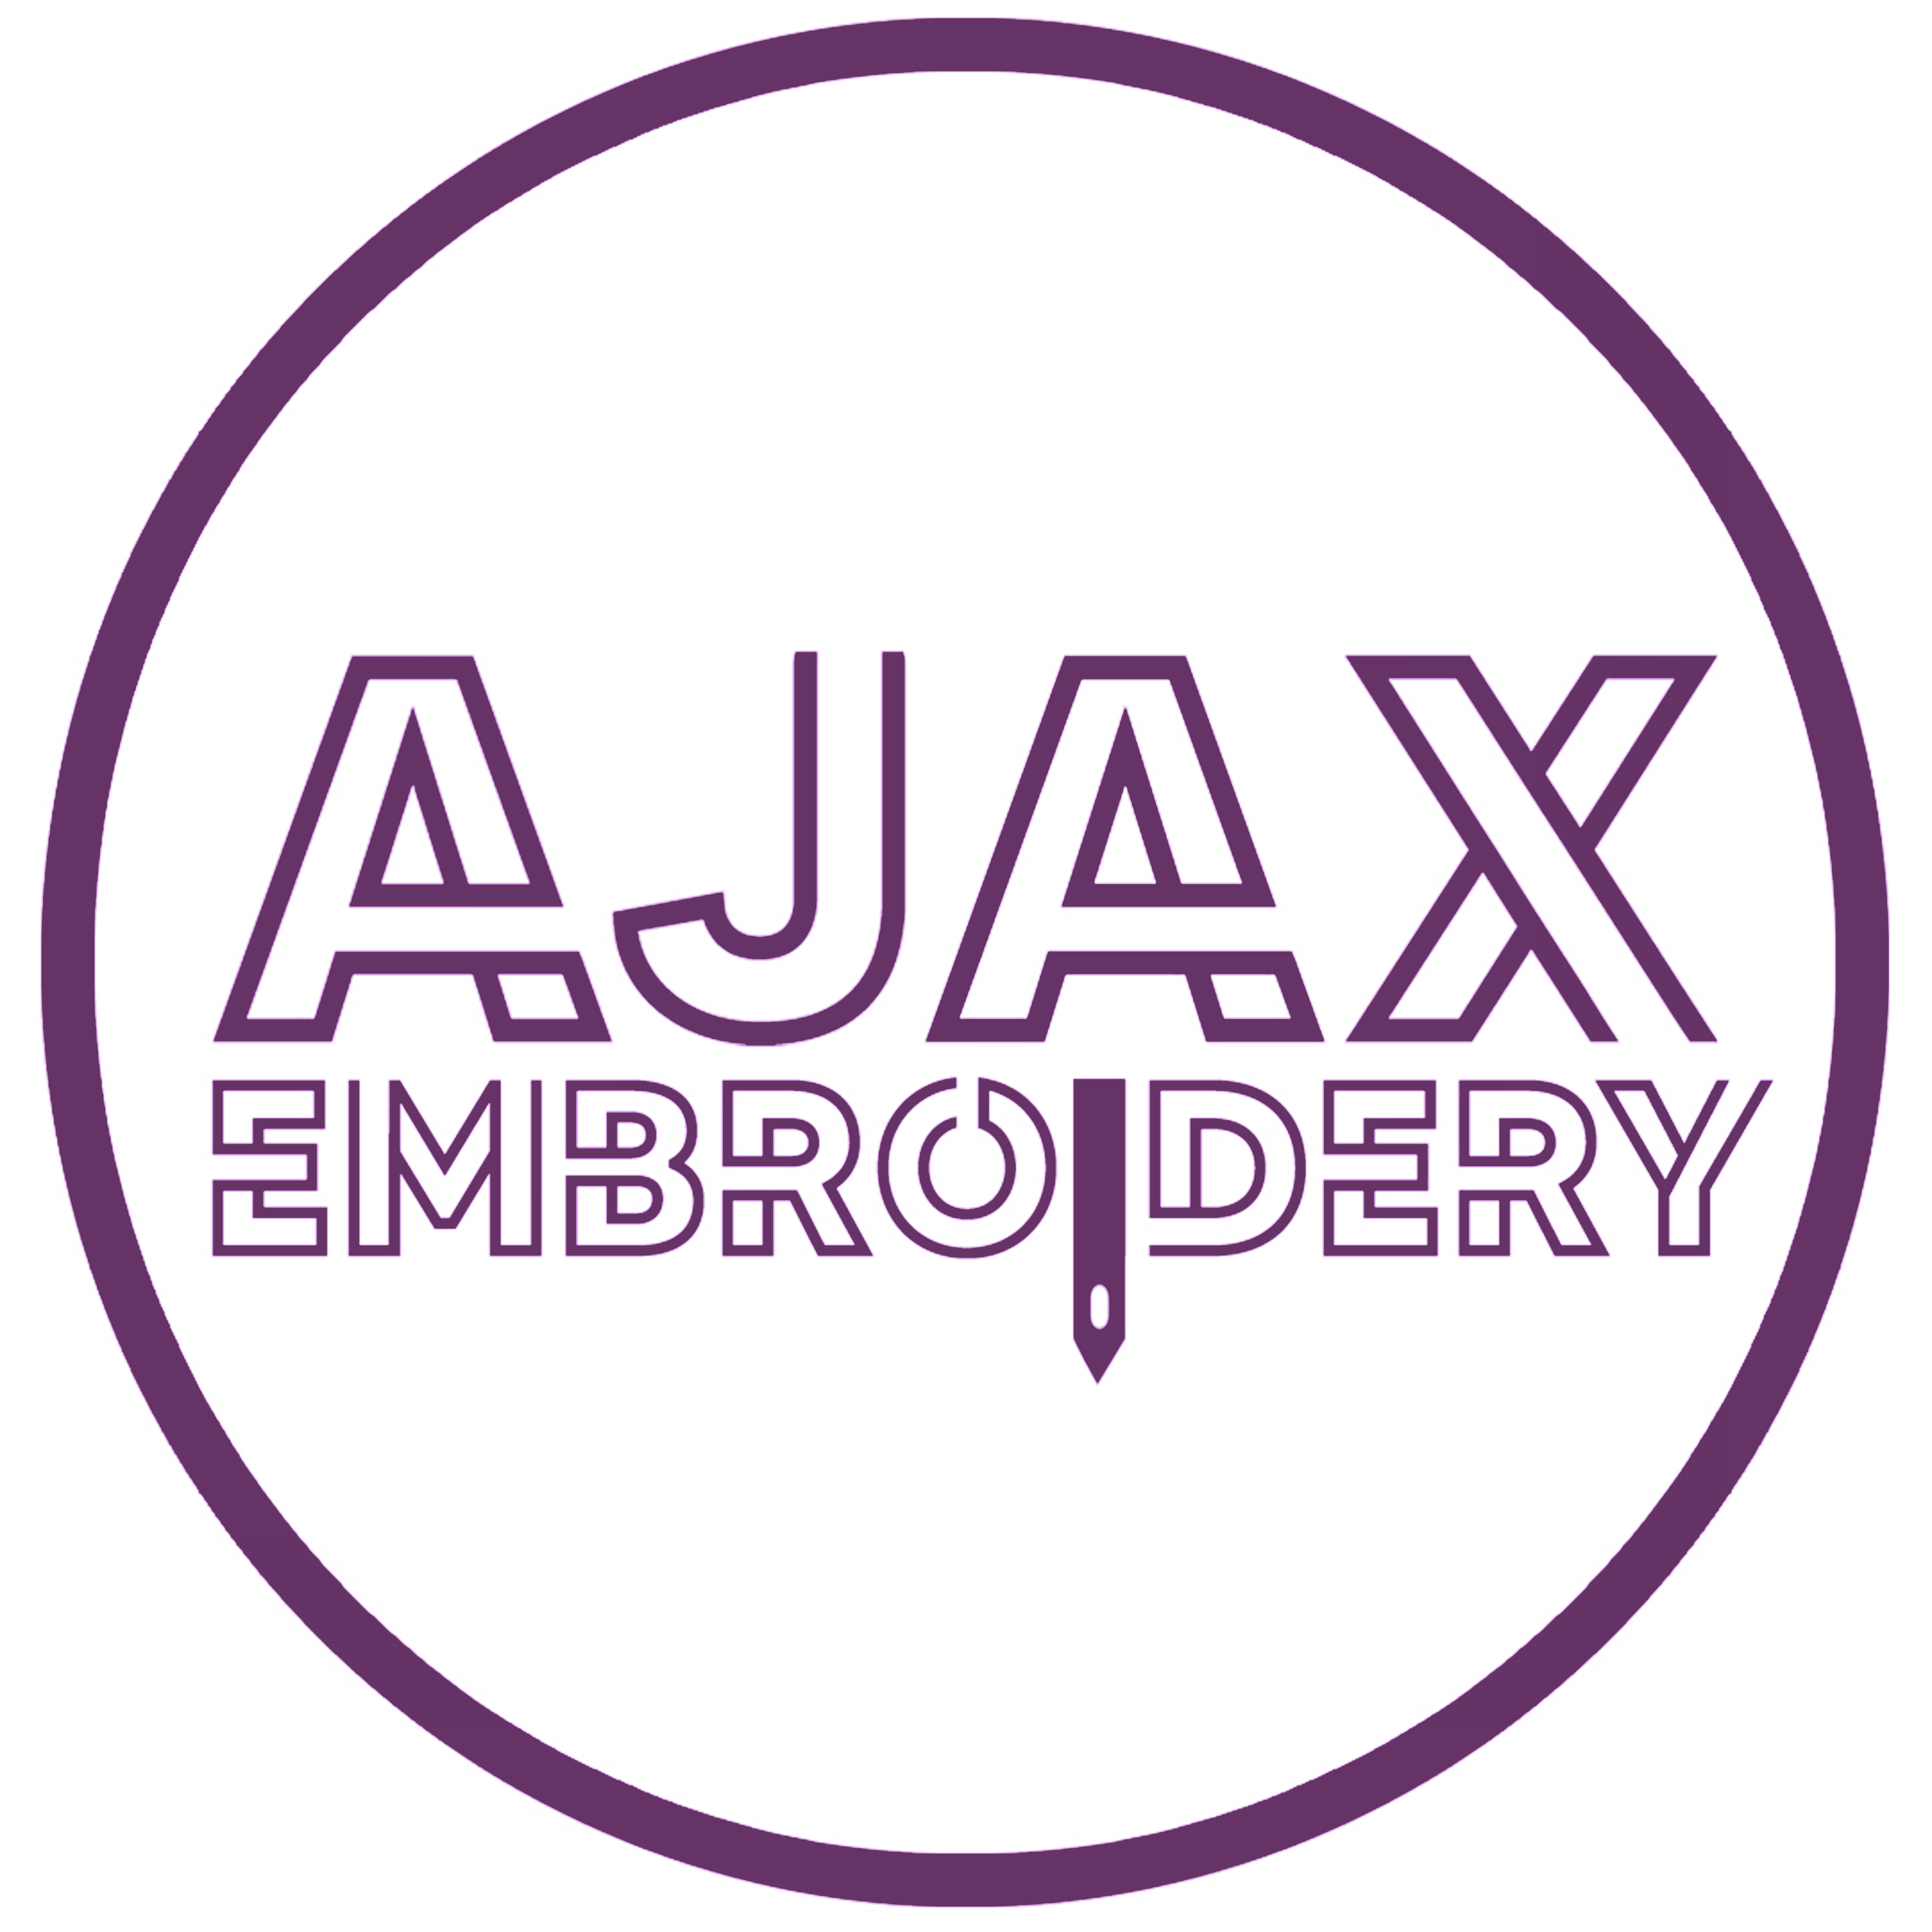 ajaxembroidery's profile picture